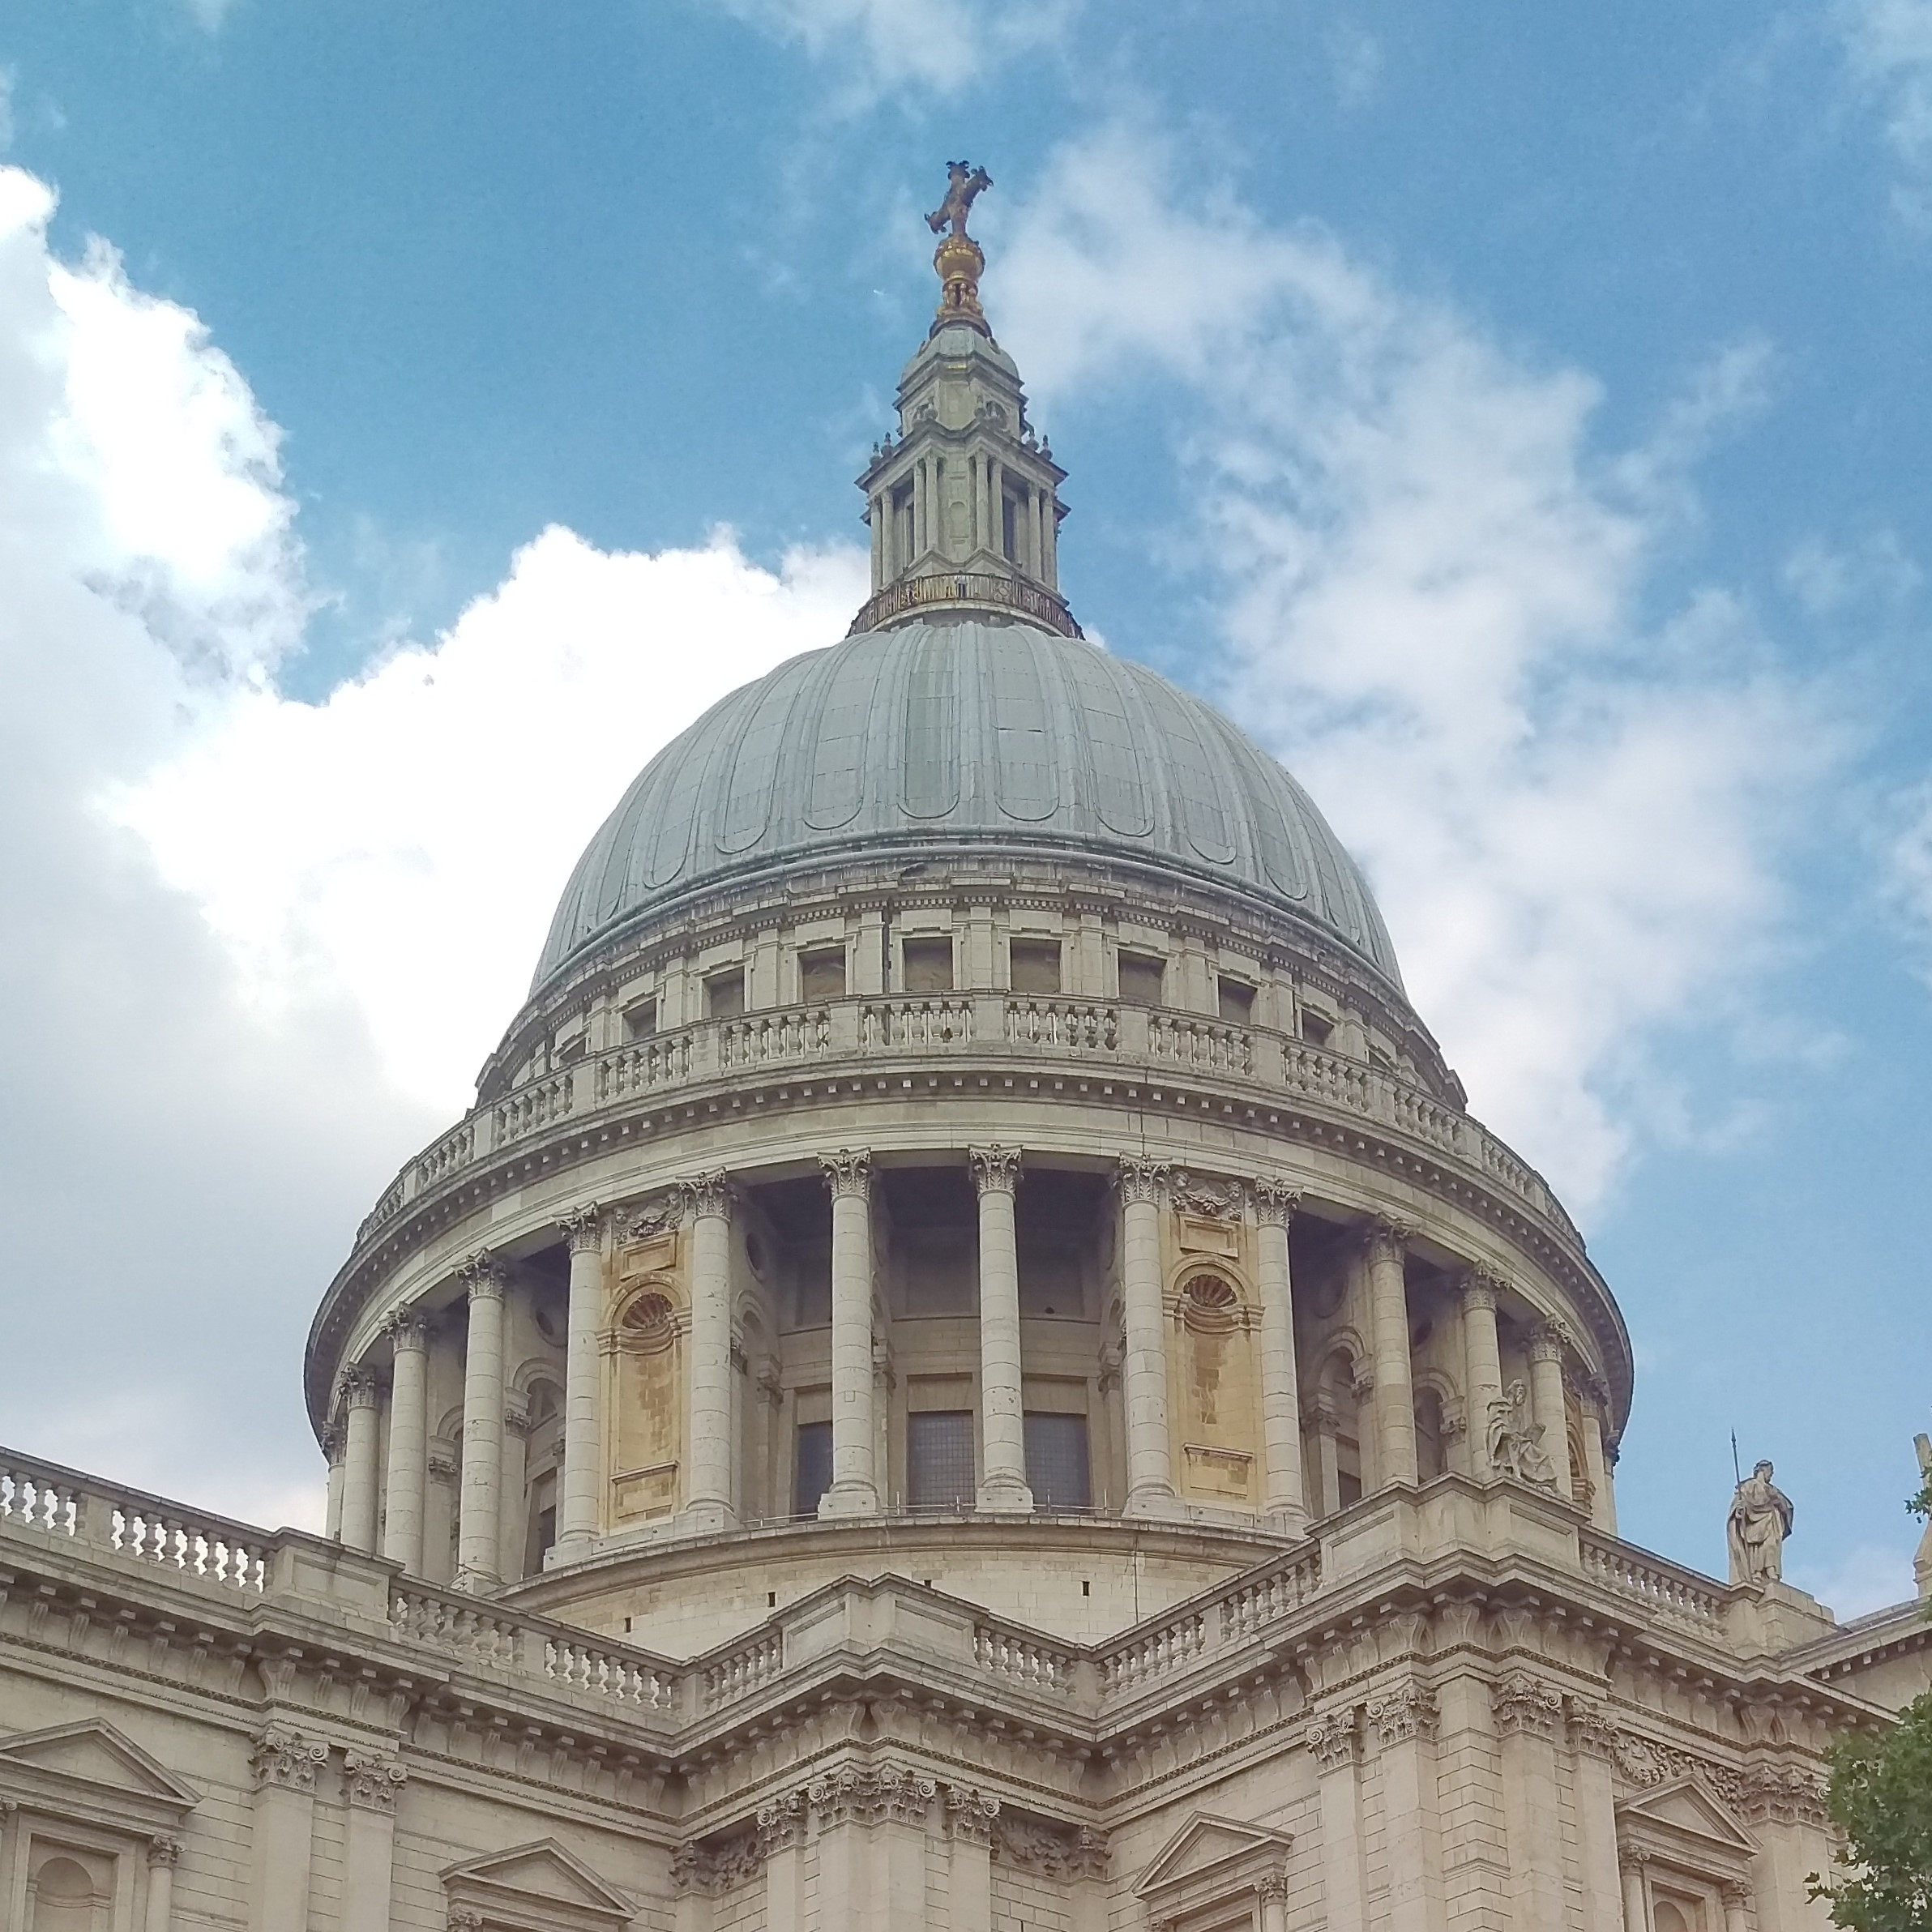 The dome of Saint Paul's Cathedral, London, as seen from the south west.